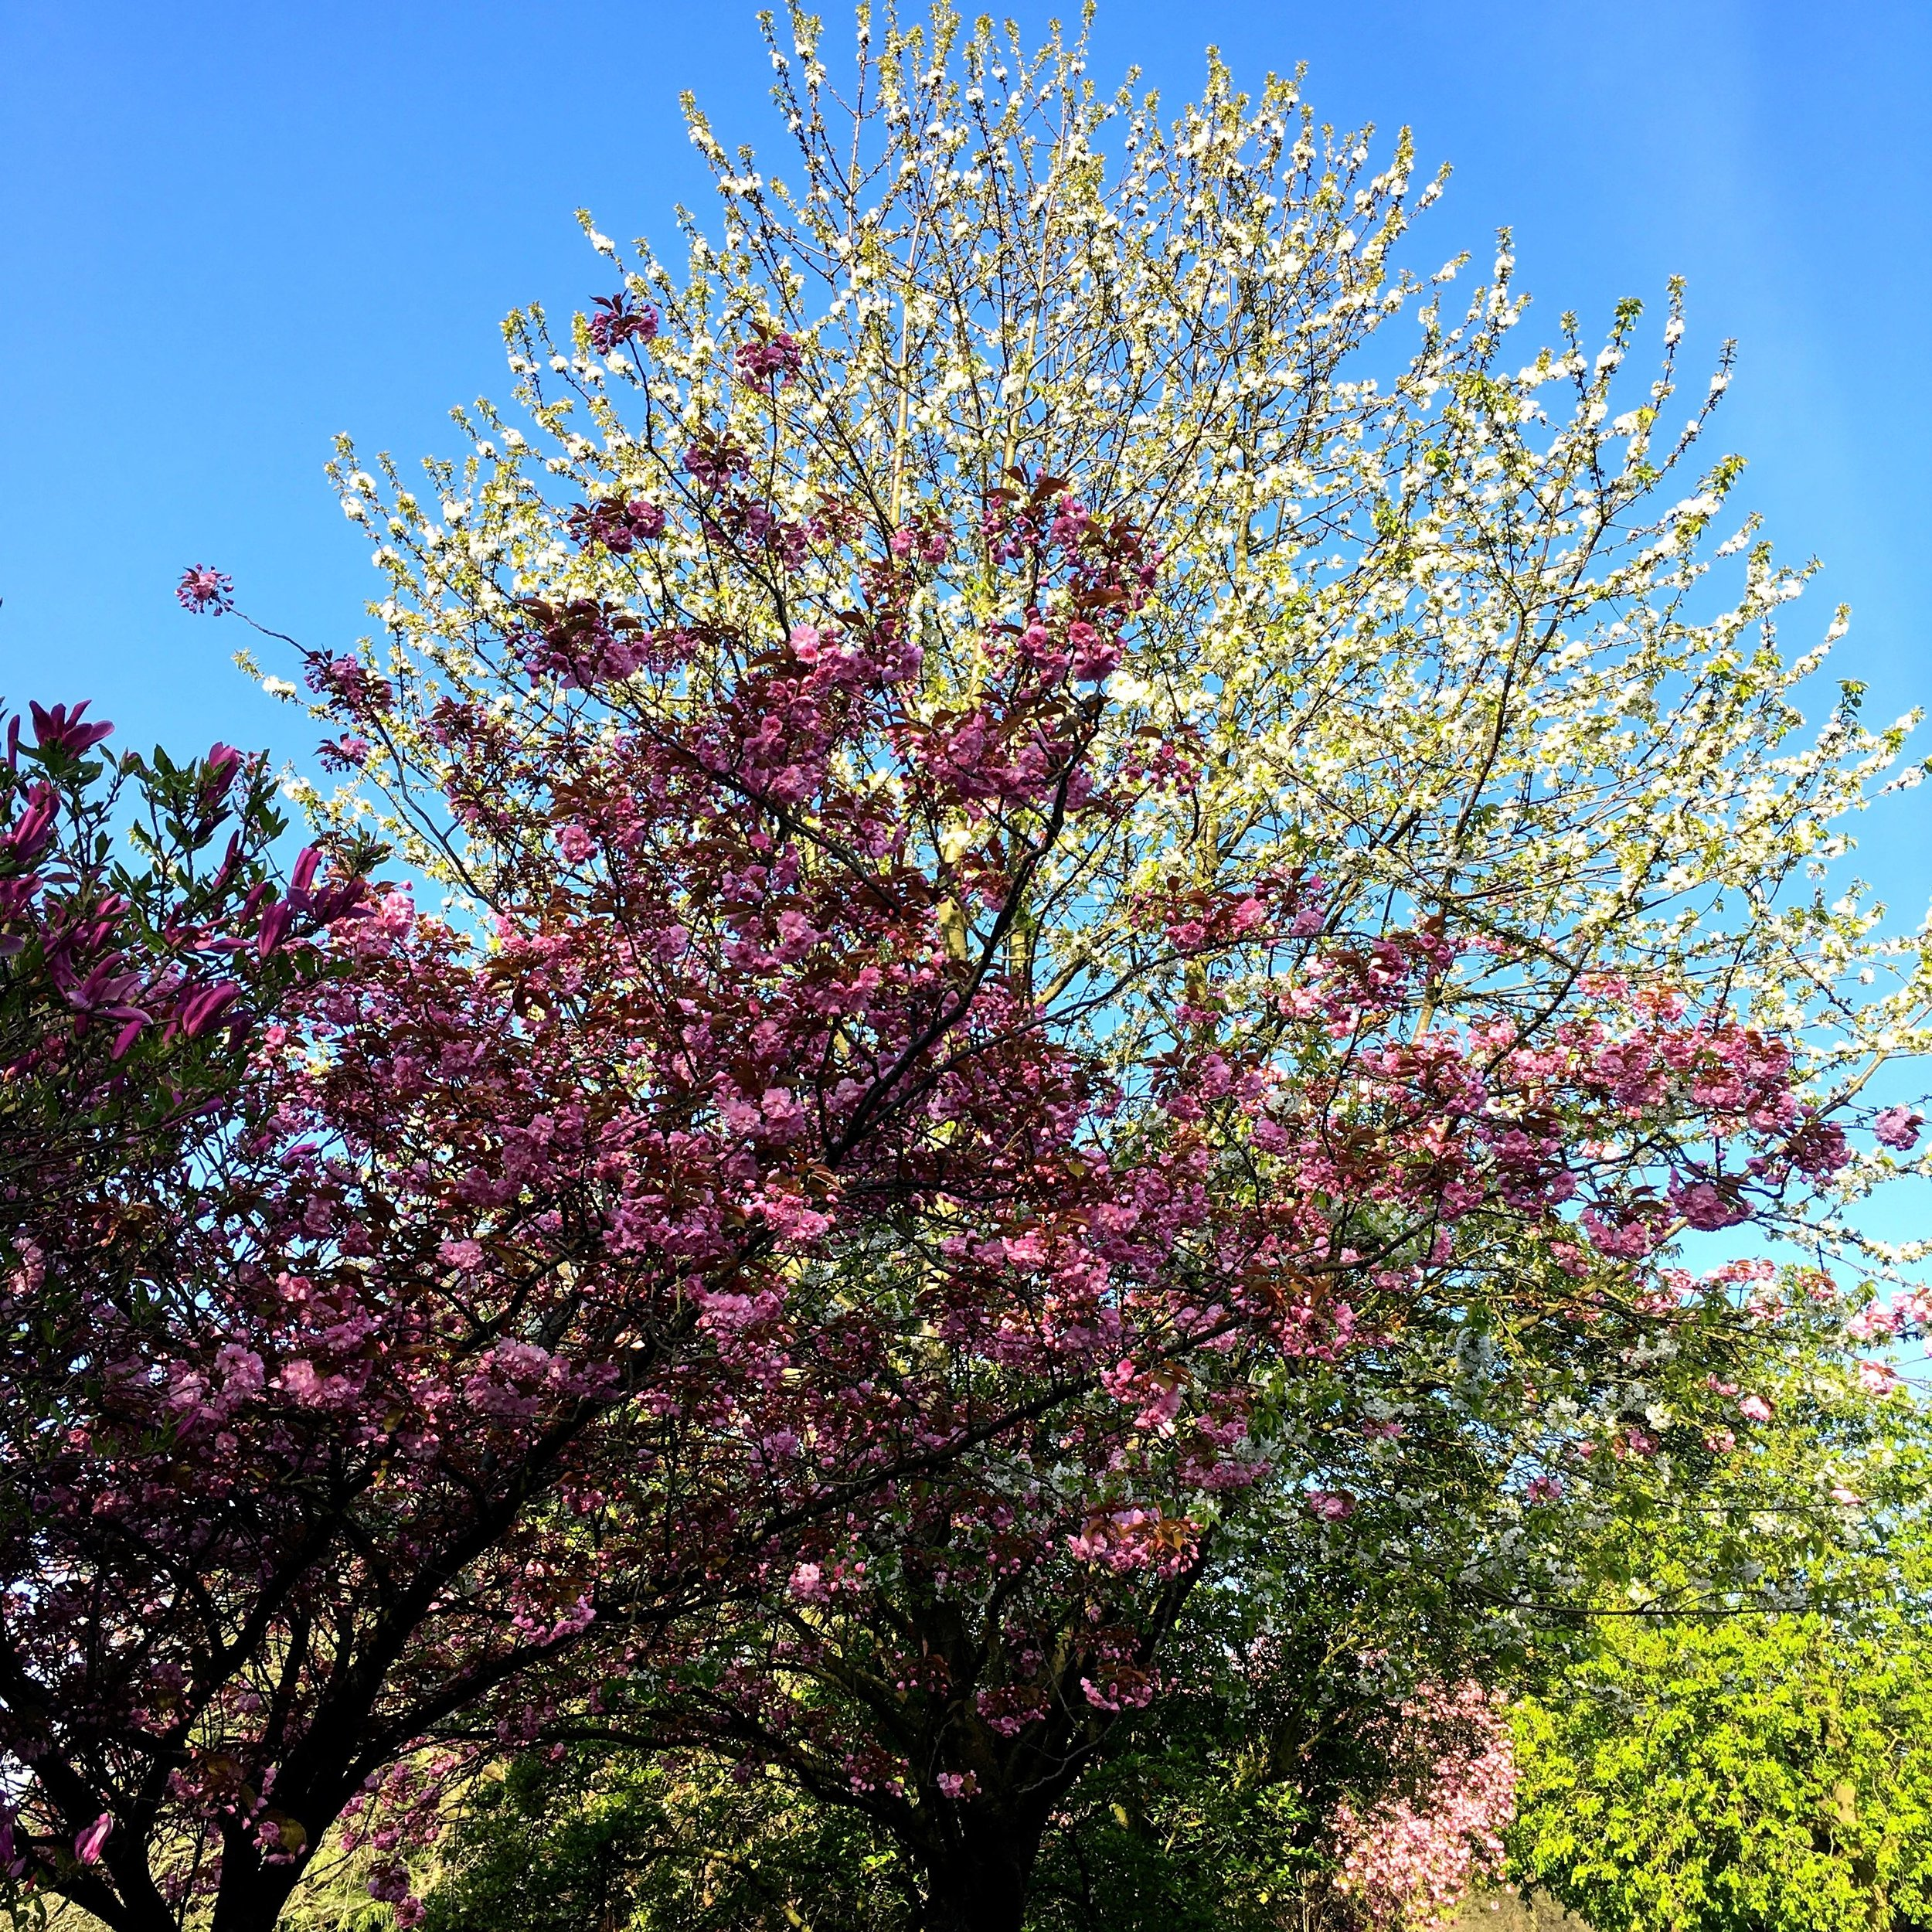 April in greenwich park was full of blossom - and often blossomtastic